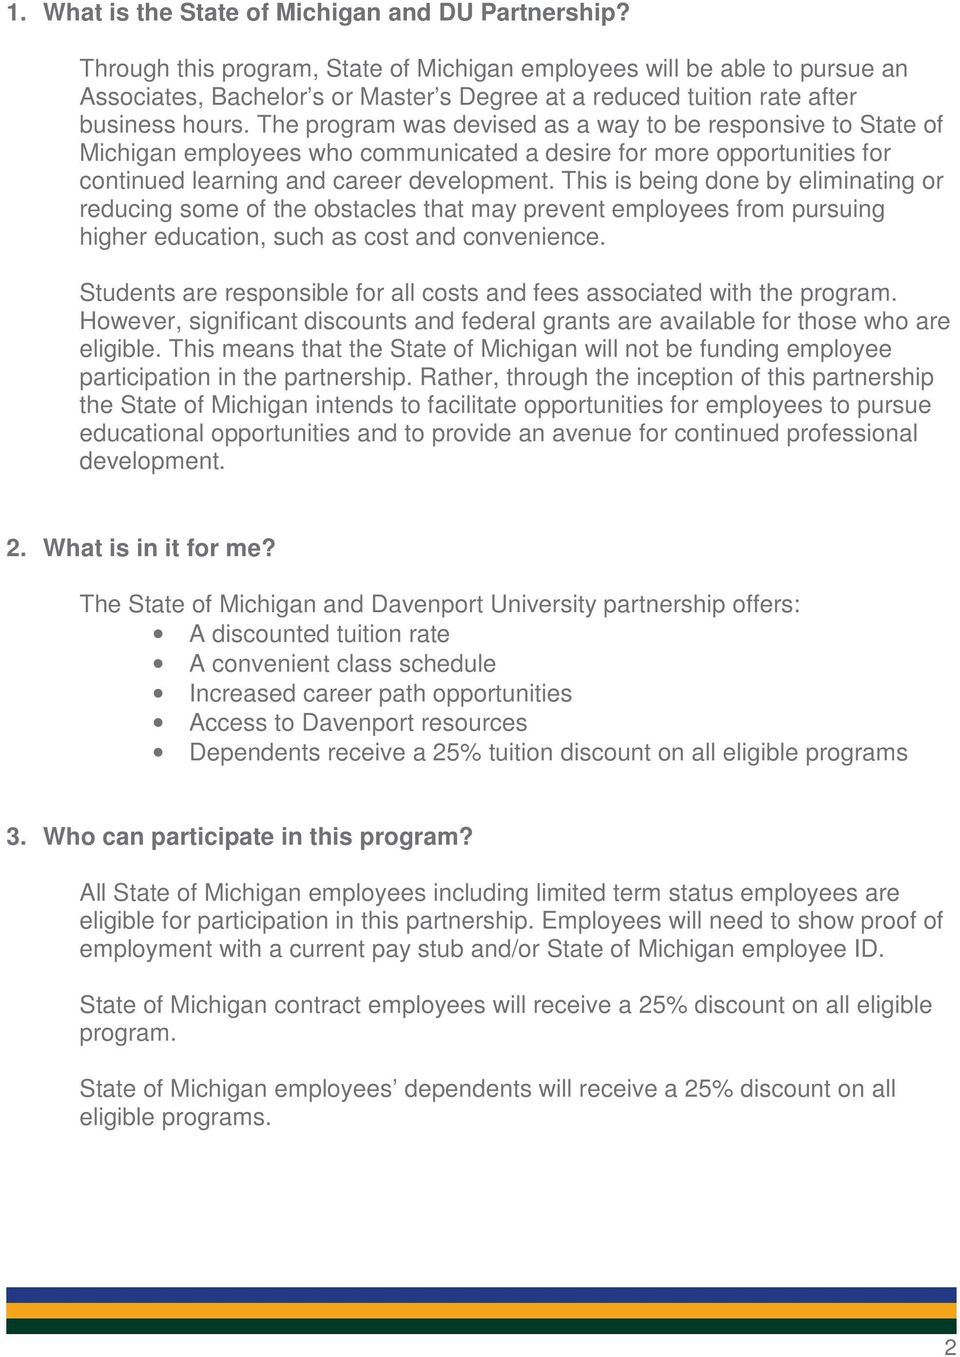 The program was devised as a way to be responsive to State of Michigan employees who communicated a desire for more opportunities for continued learning and career development.